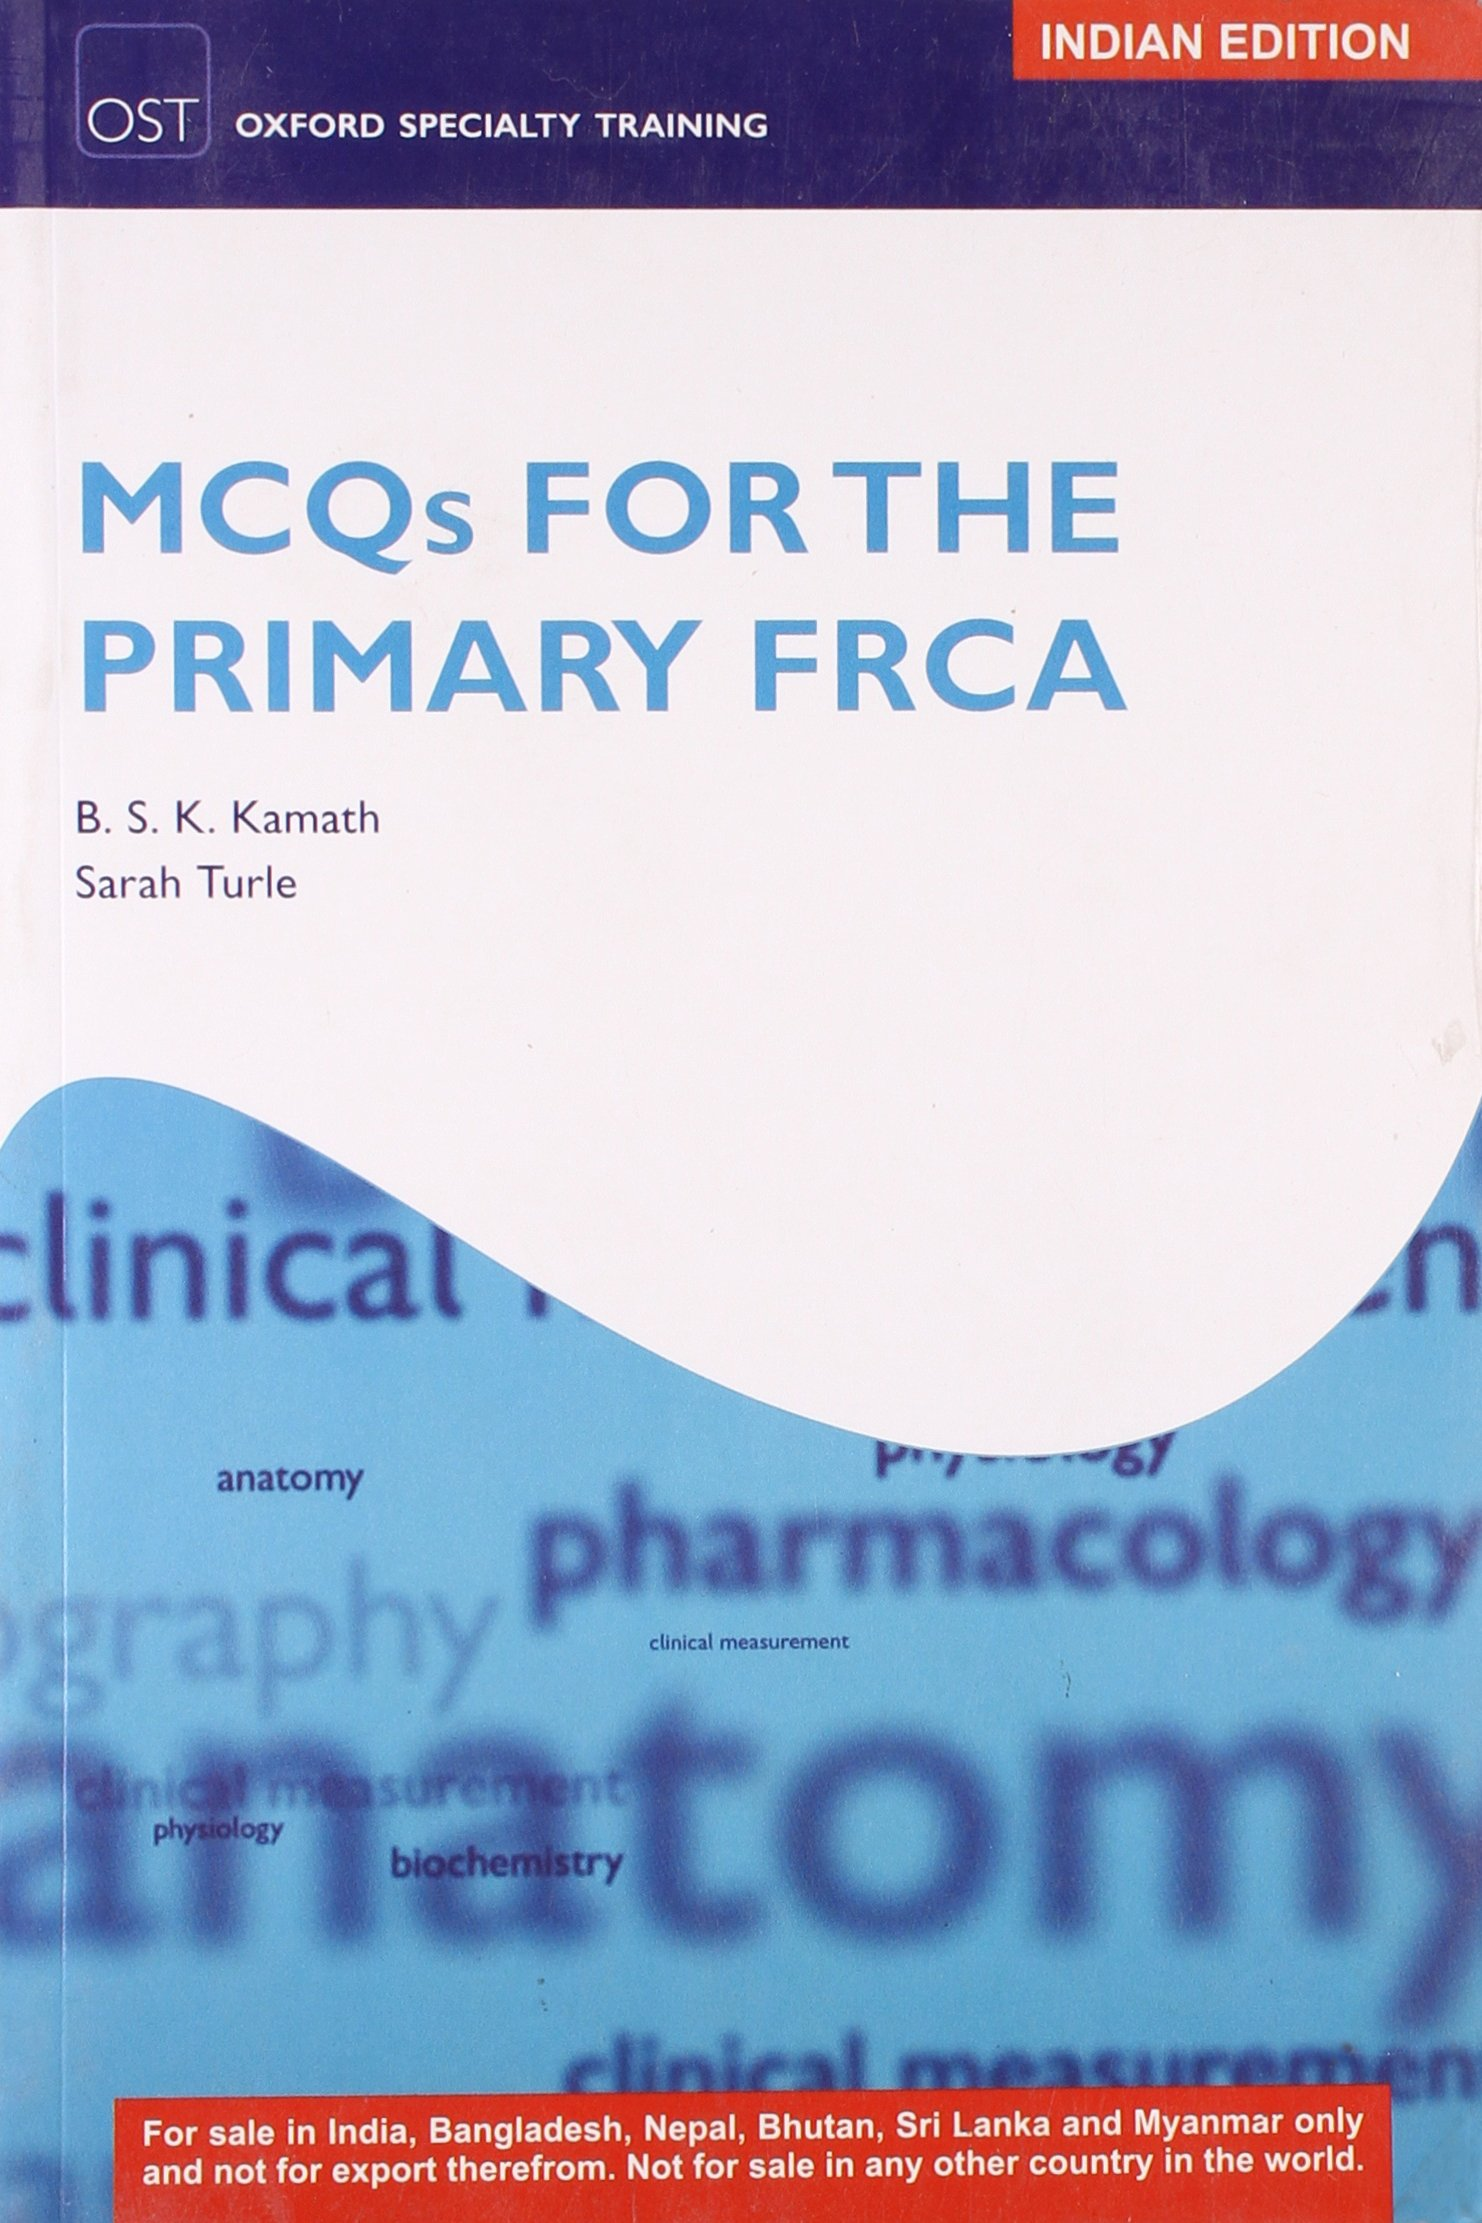 Amazon.in: Buy MCQs for the Primary FRCA Book Online at Low Prices in India  | MCQs for the Primary FRCA Reviews & Ratings